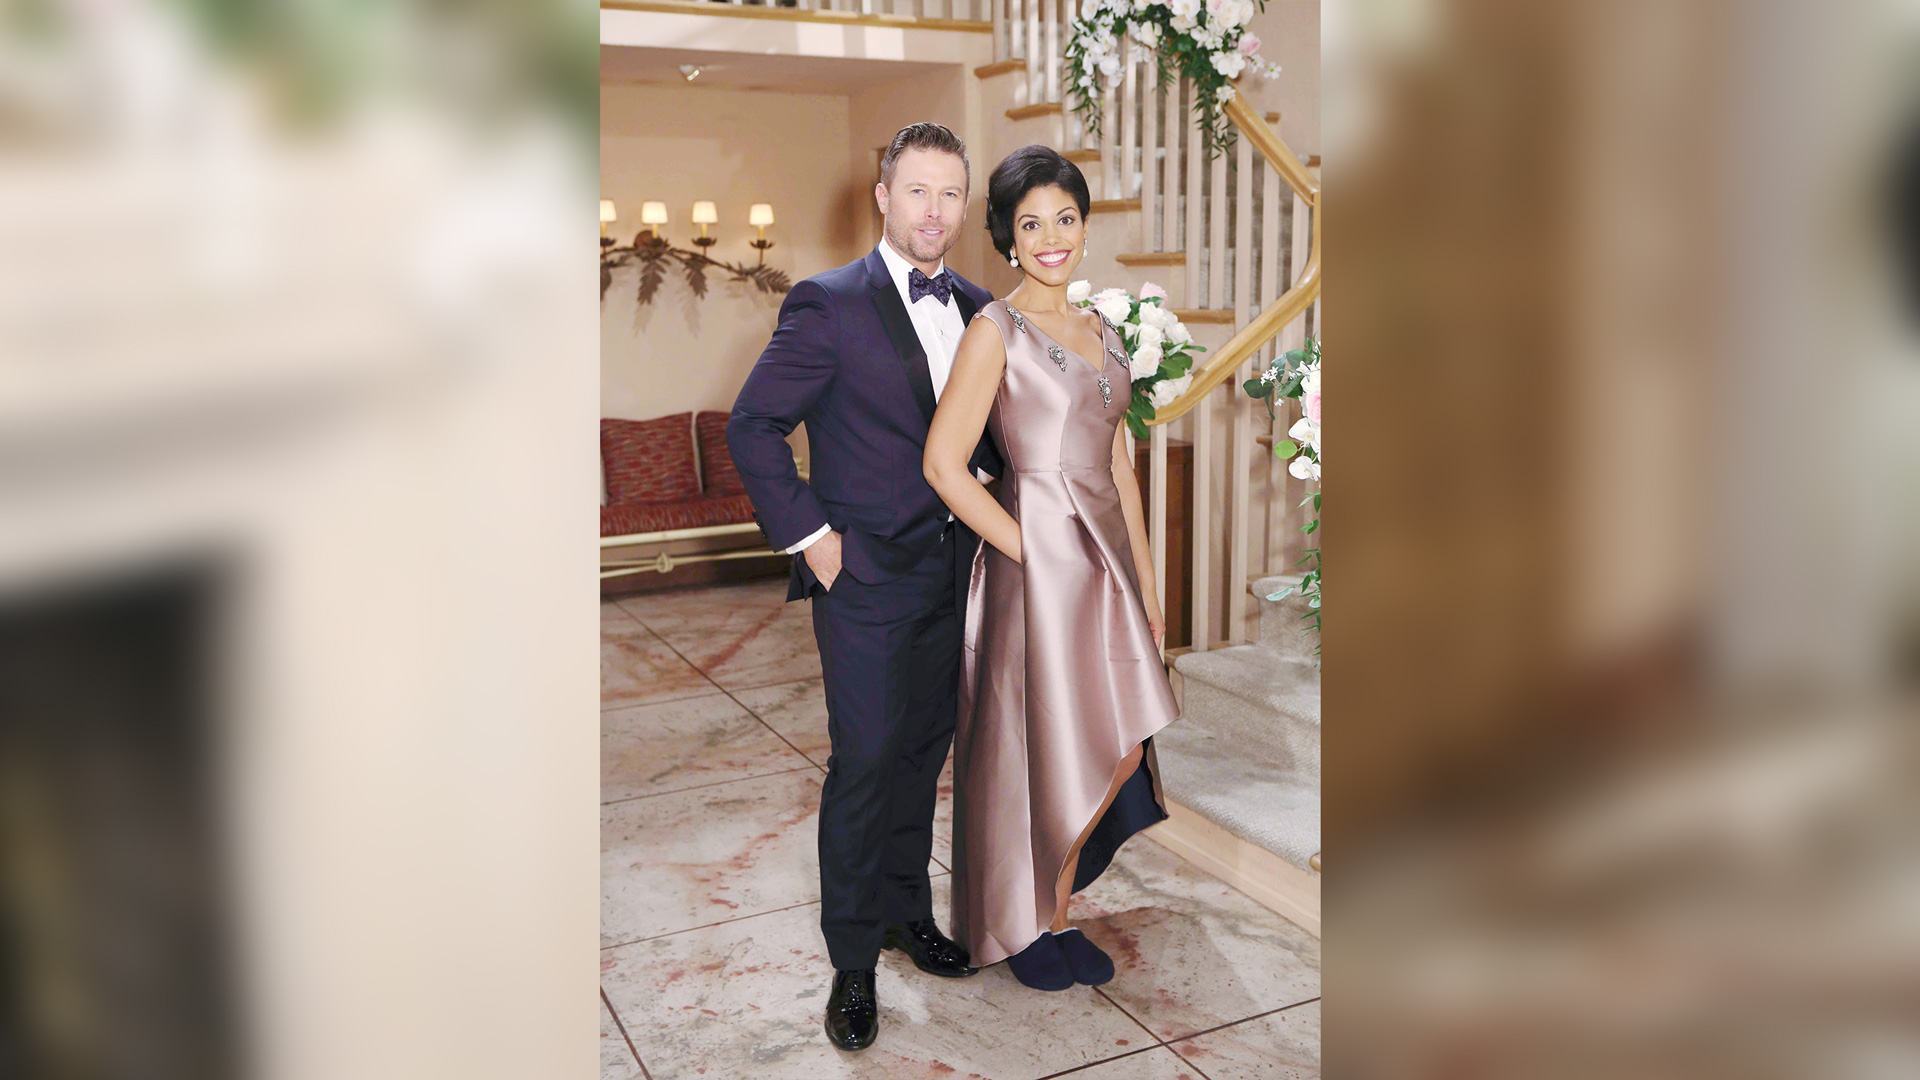 Rick Forrester (Jacob Young) and Maya Avant (Karla Mosley) look remarkable in their wedding attire.